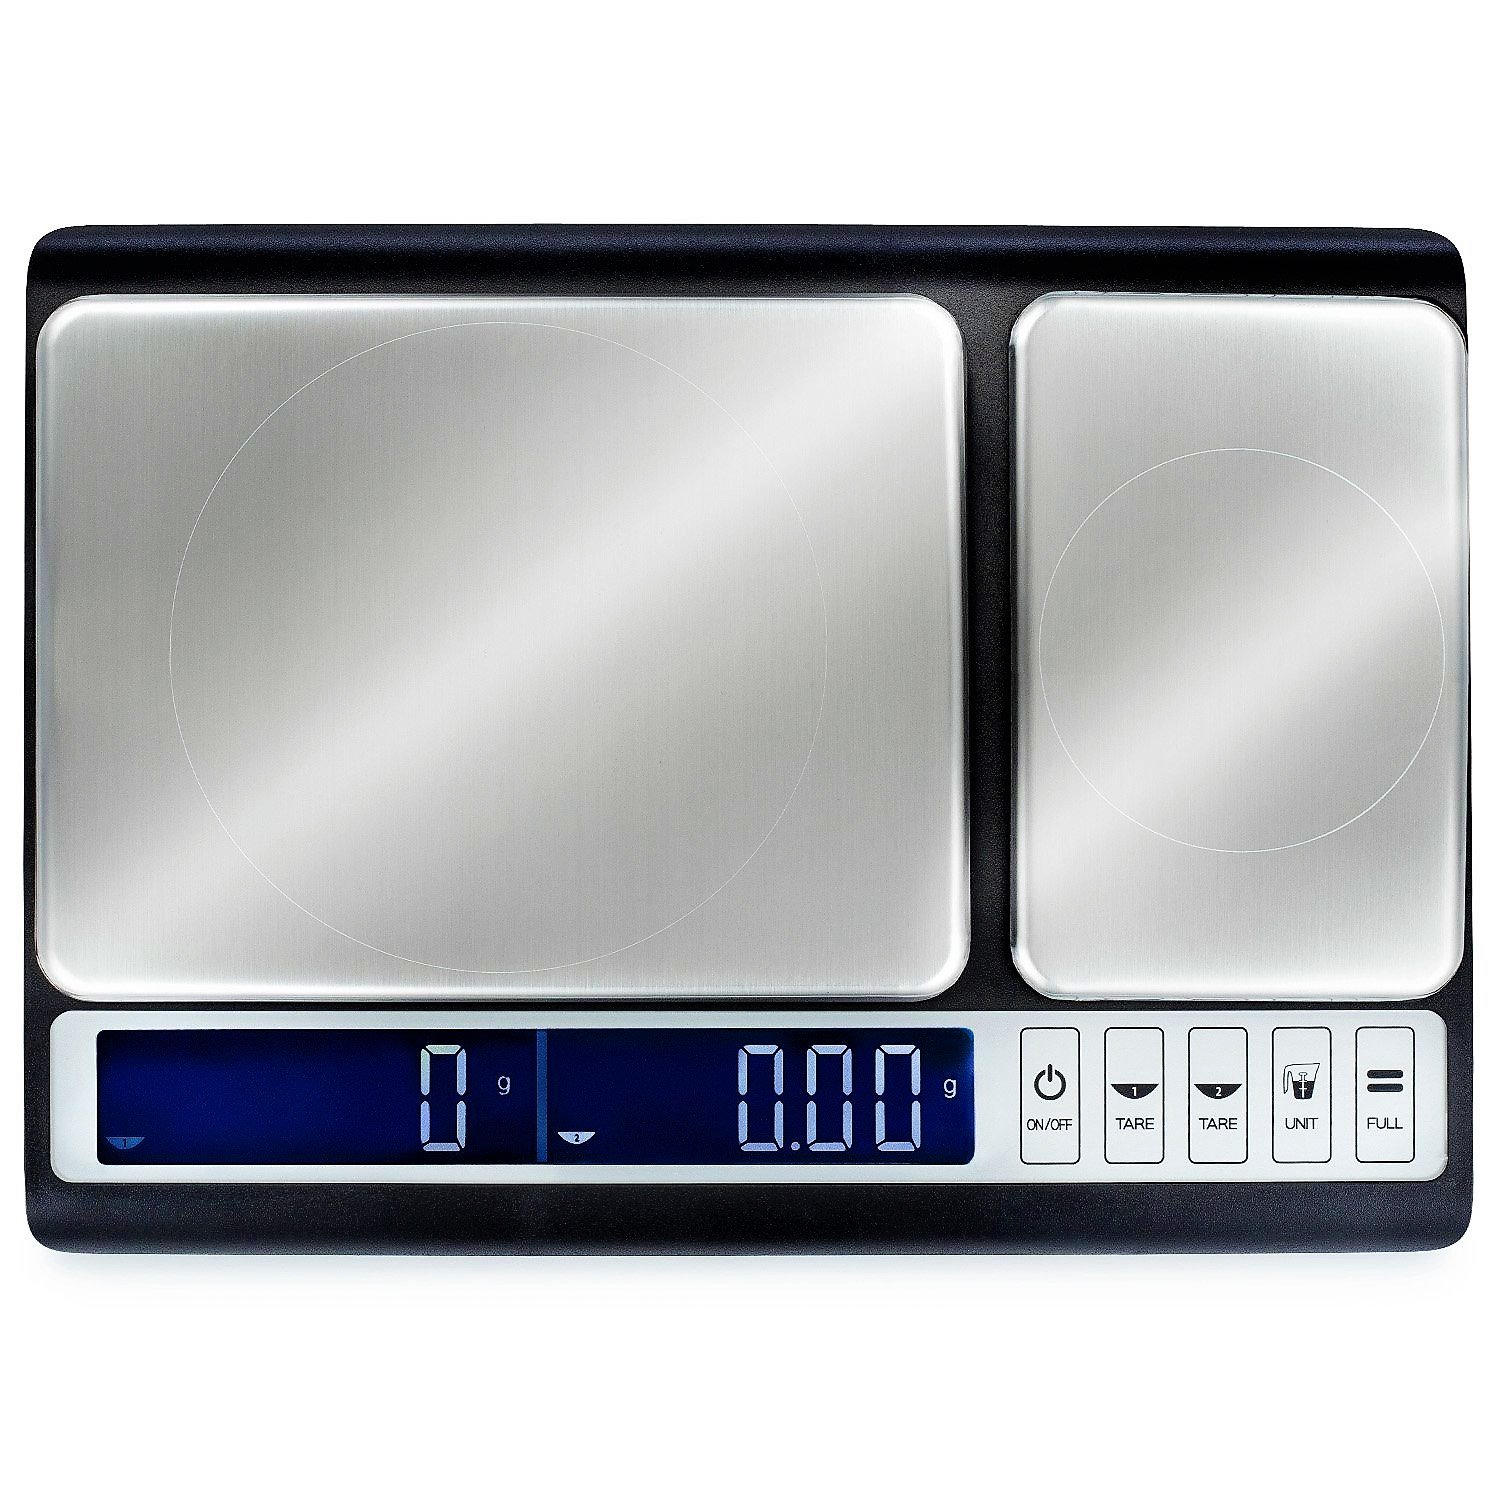 Smart Weigh Culinary Kitchen Scale 10 kilograms x 0.01 grams, Digital Food Scale with Dual Weight Platforms for Baking, Cooking, Food, and Ingredients by Smart Weigh